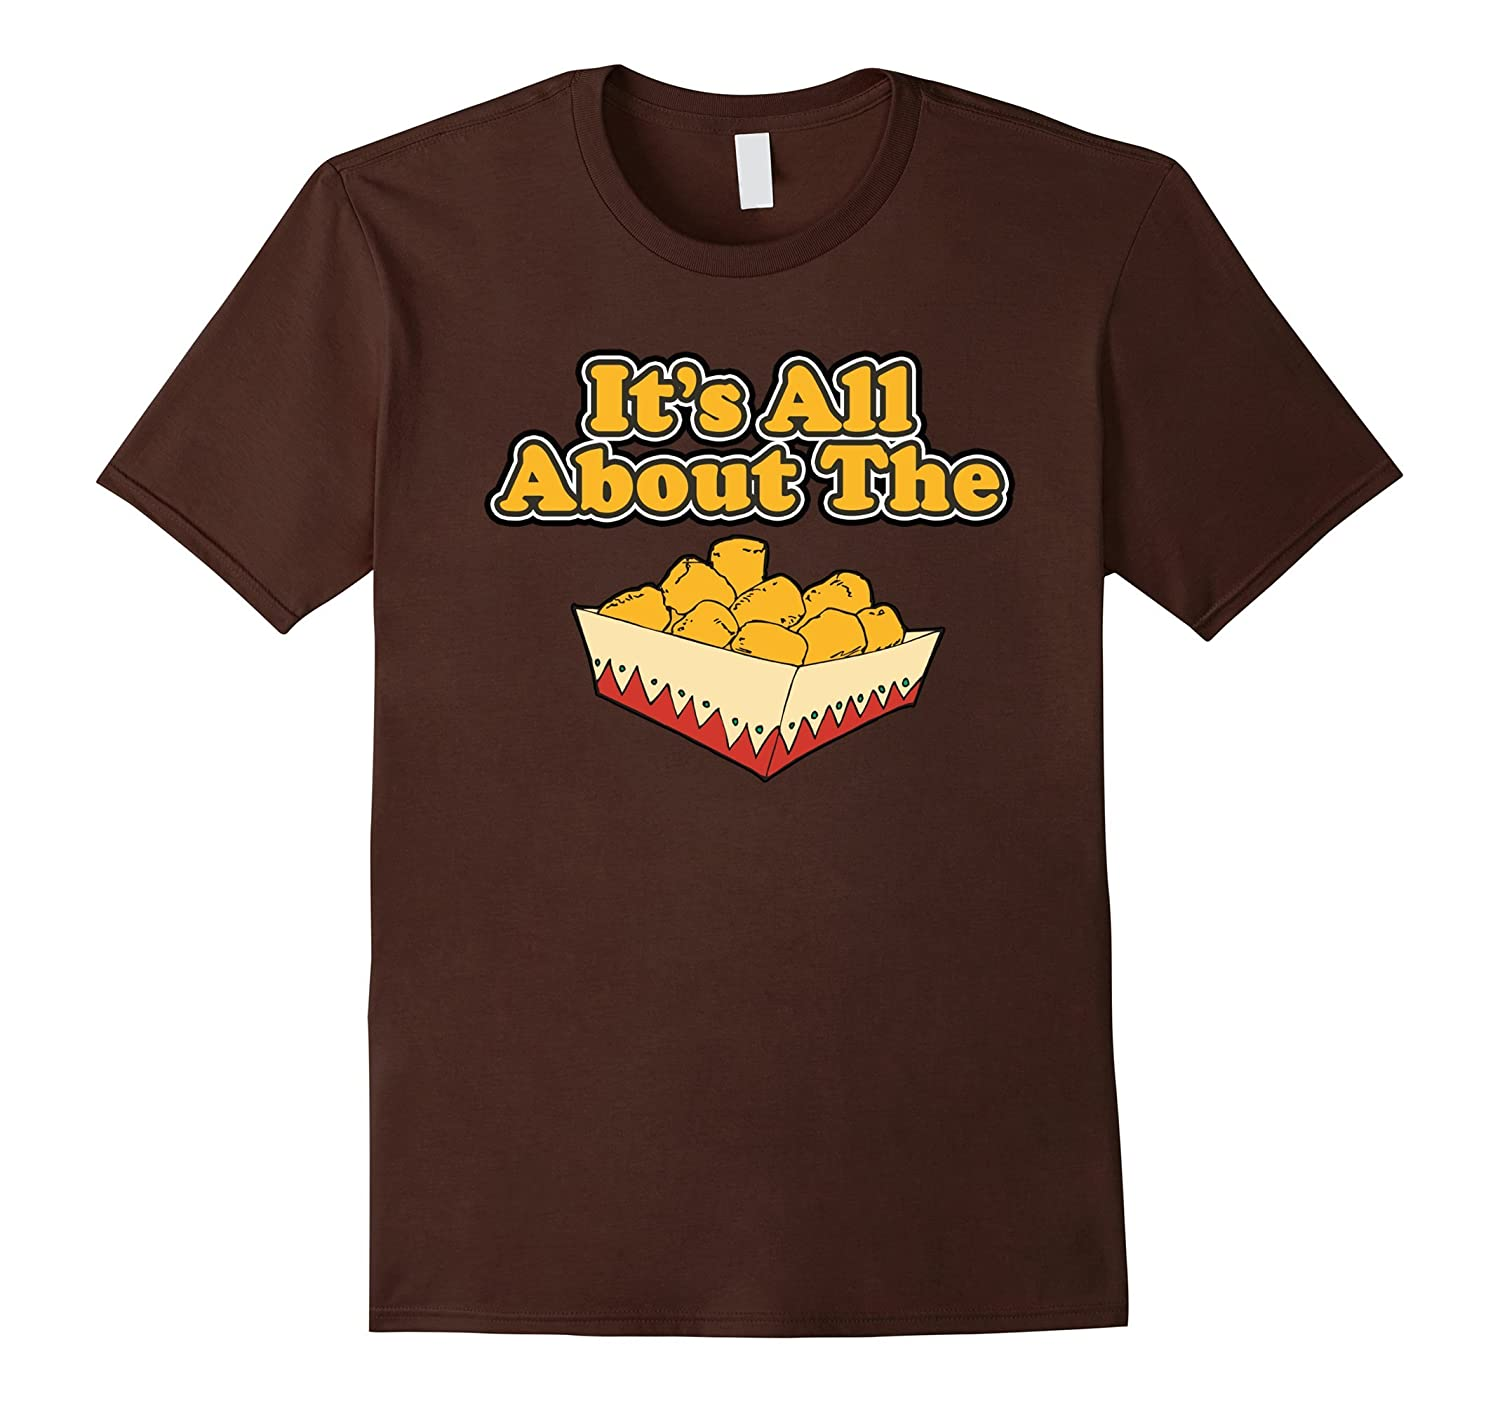 All About The Tater Tots Food Humor T-Shirt